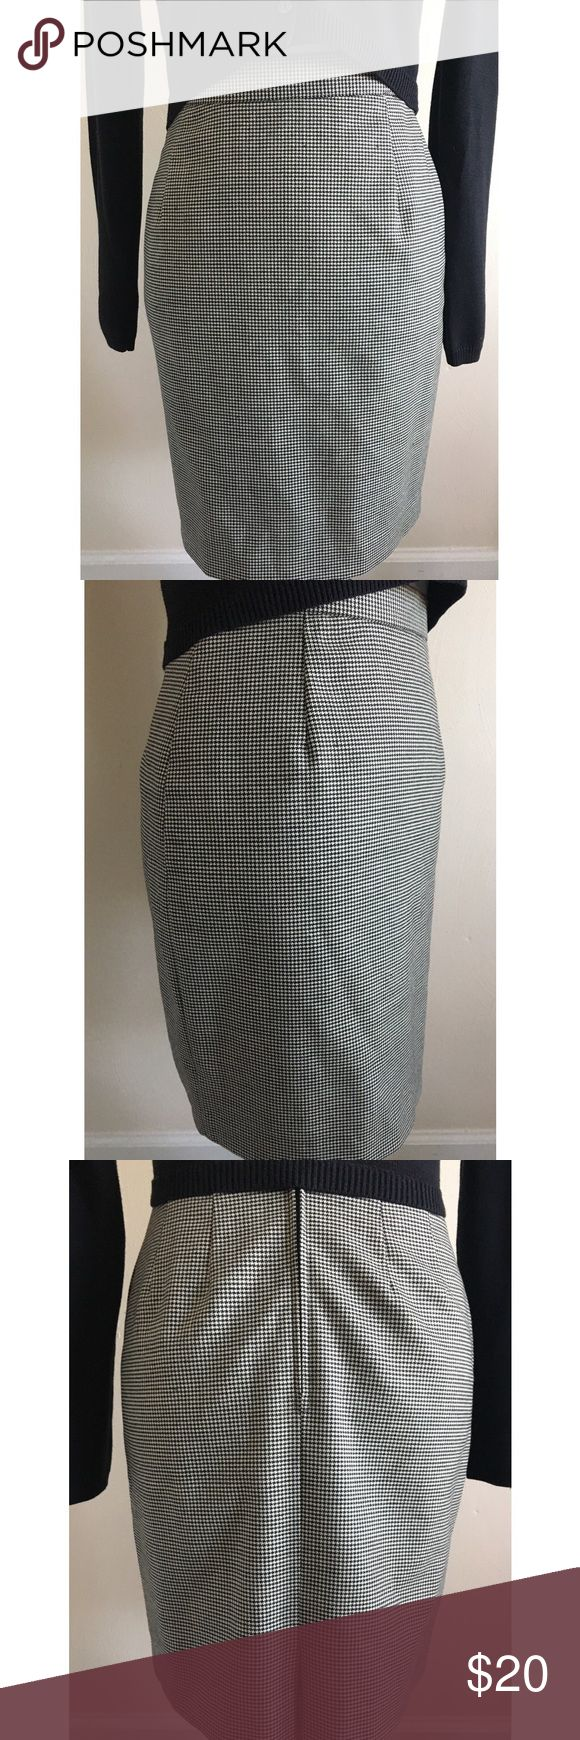 """Marks & Spencer London Houndstooth Pencil Skirt The perfect pencil skirt! Like new! UK Size 10 but this skirt is more like a US Size 4. Measurements = 21"""" Length / 25"""" Waist / 36"""" Hips  • Size XS • Wool & Elastane • Black & White Houndstooth  • Like New! Marks & Spencer  Skirts Pencil"""